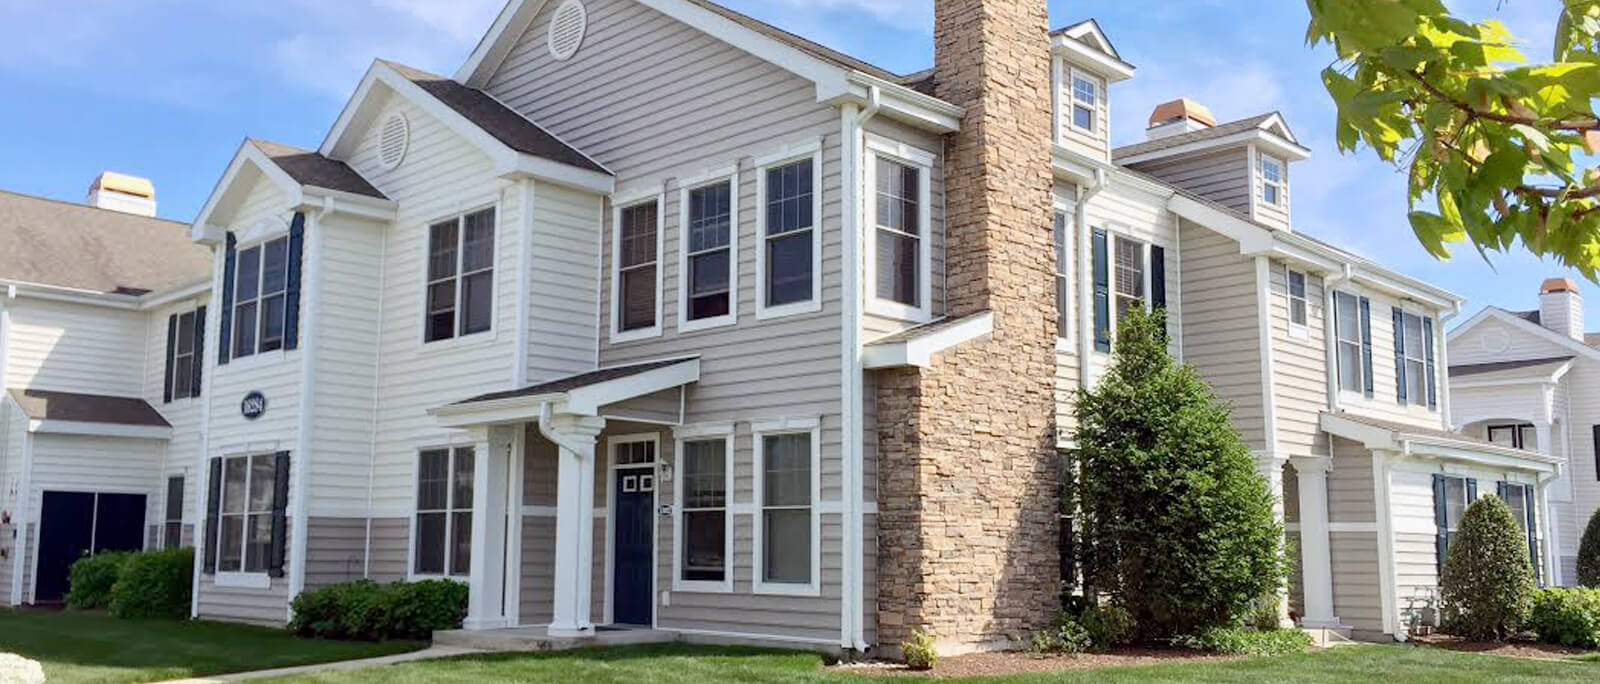 17_sussex-county-real-estate-03 Homes for Sales - Rehoboth Beach & Lewes Delaware